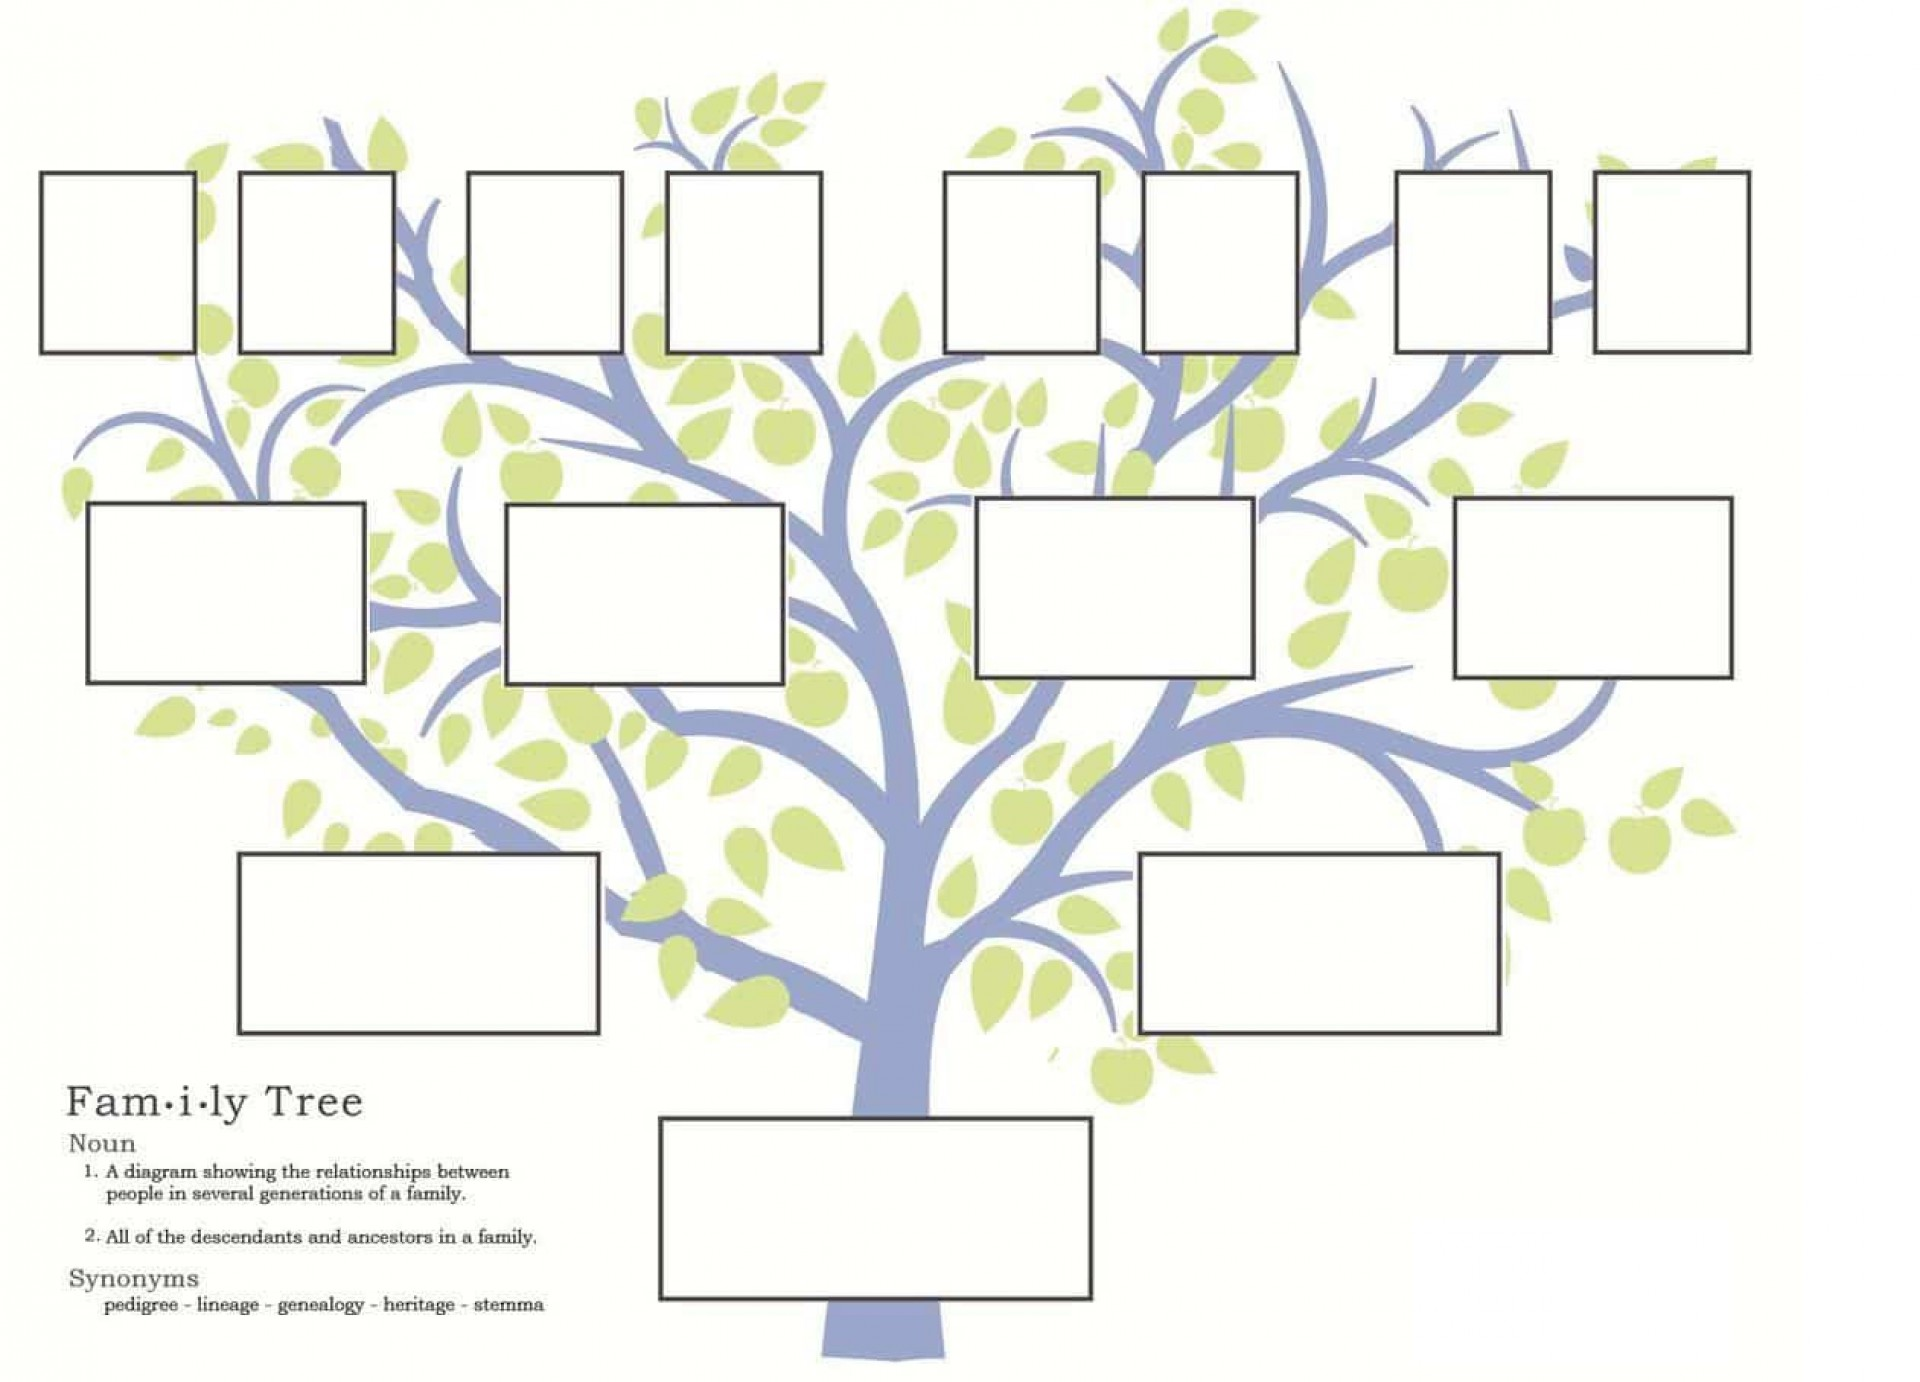 007 Stunning Family Tree Template Online Inspiration  Free Maker Excel1920